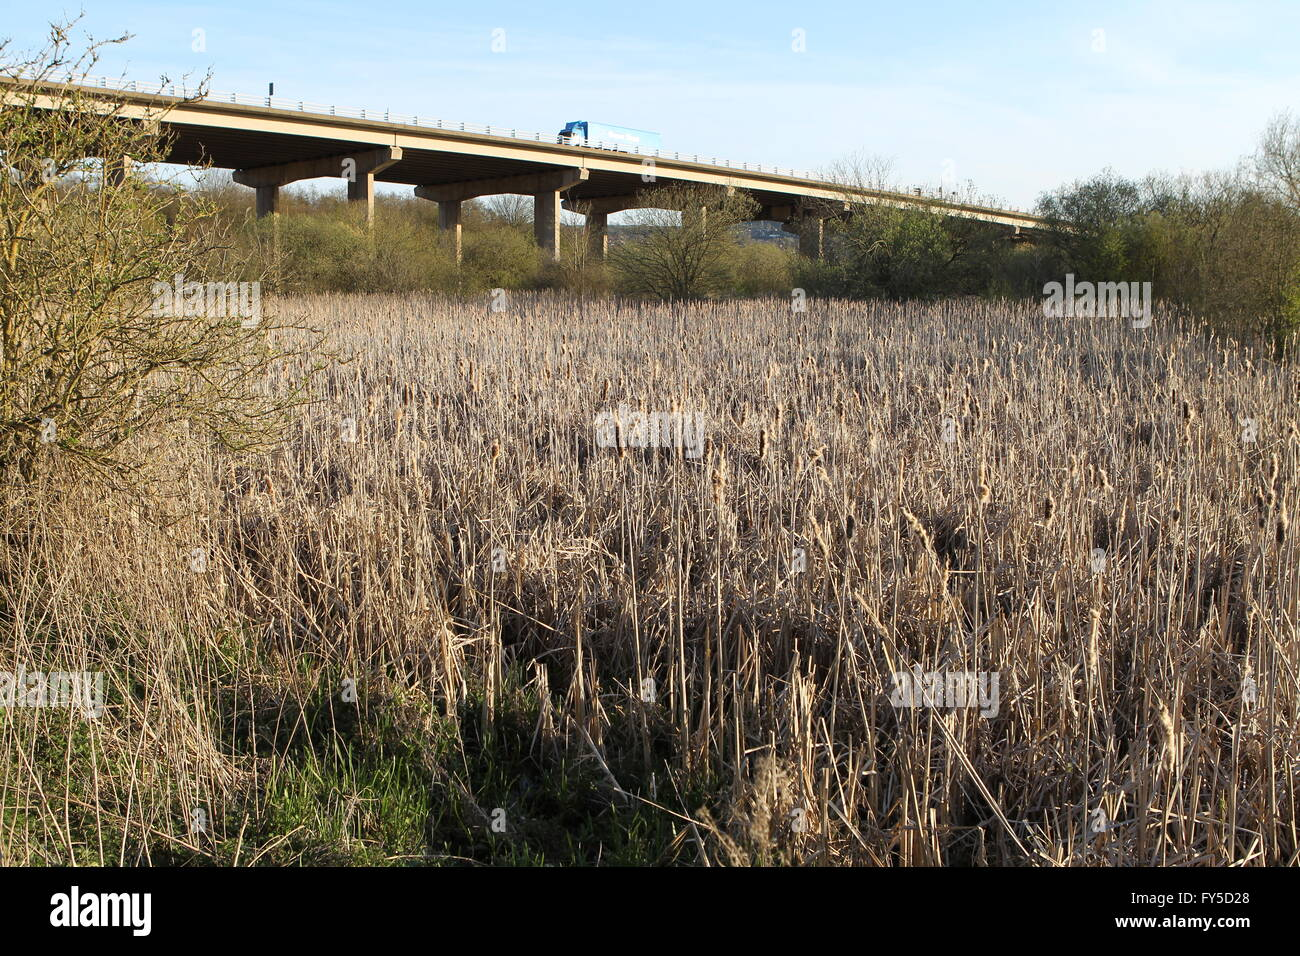 Motorway flyover and reed bed - Stock Image